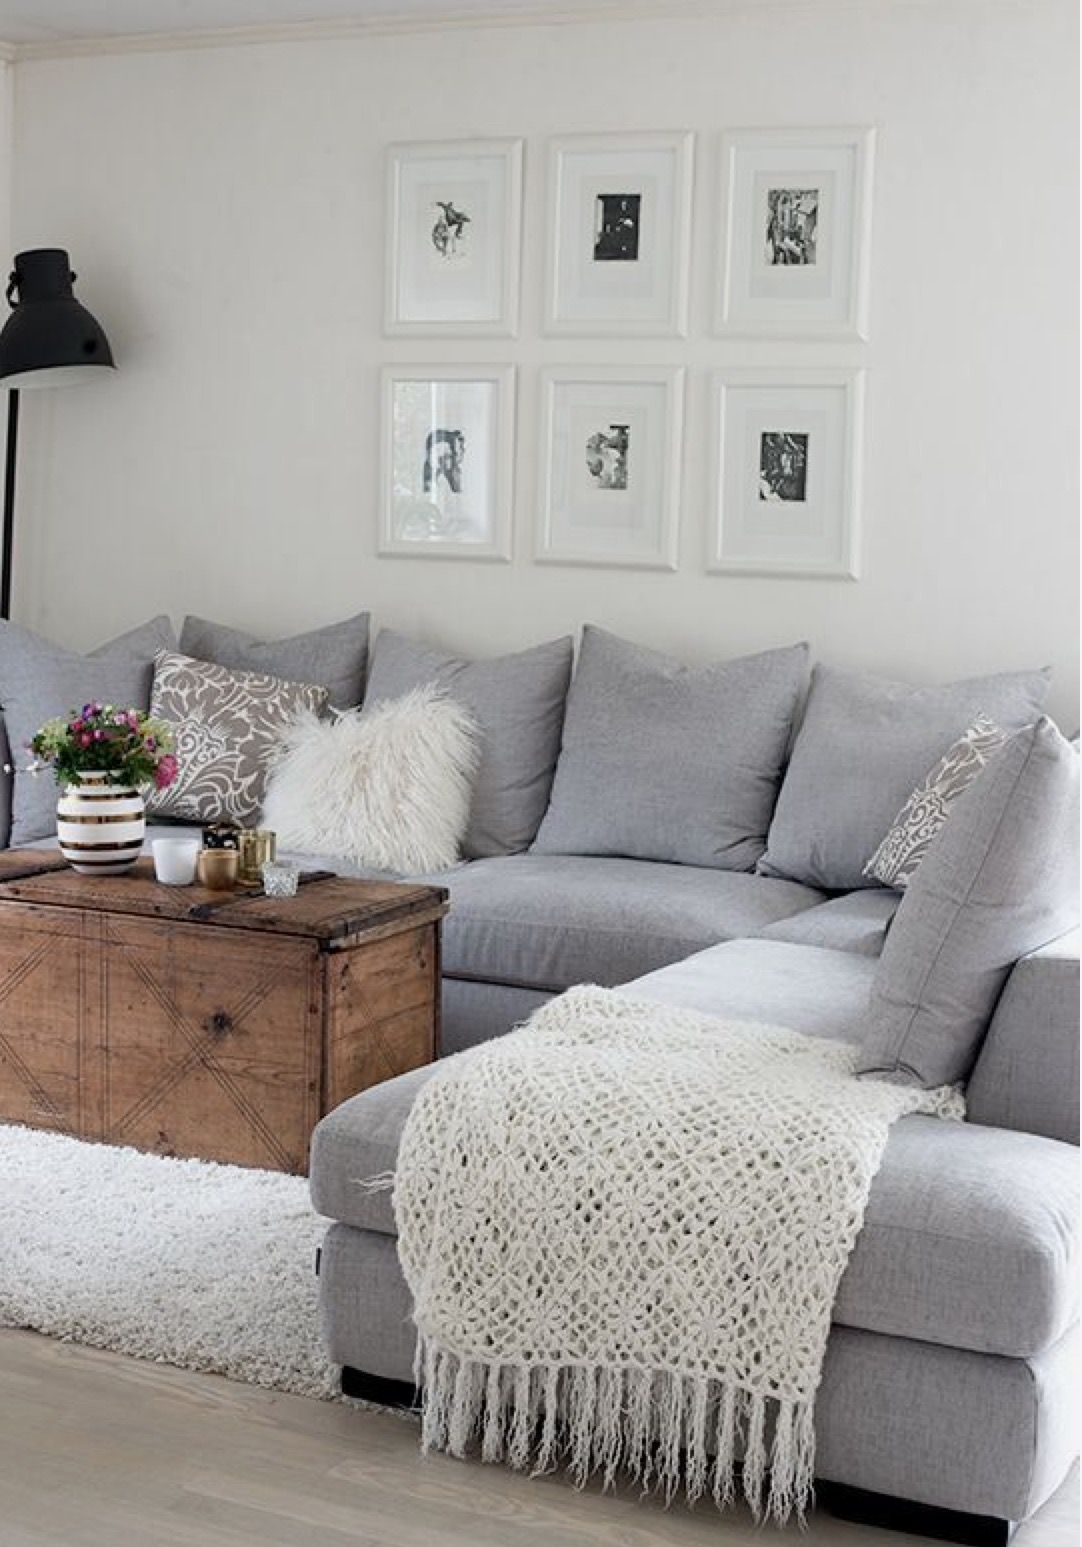 Pin by caitlin ouneal on home decor in pinterest living